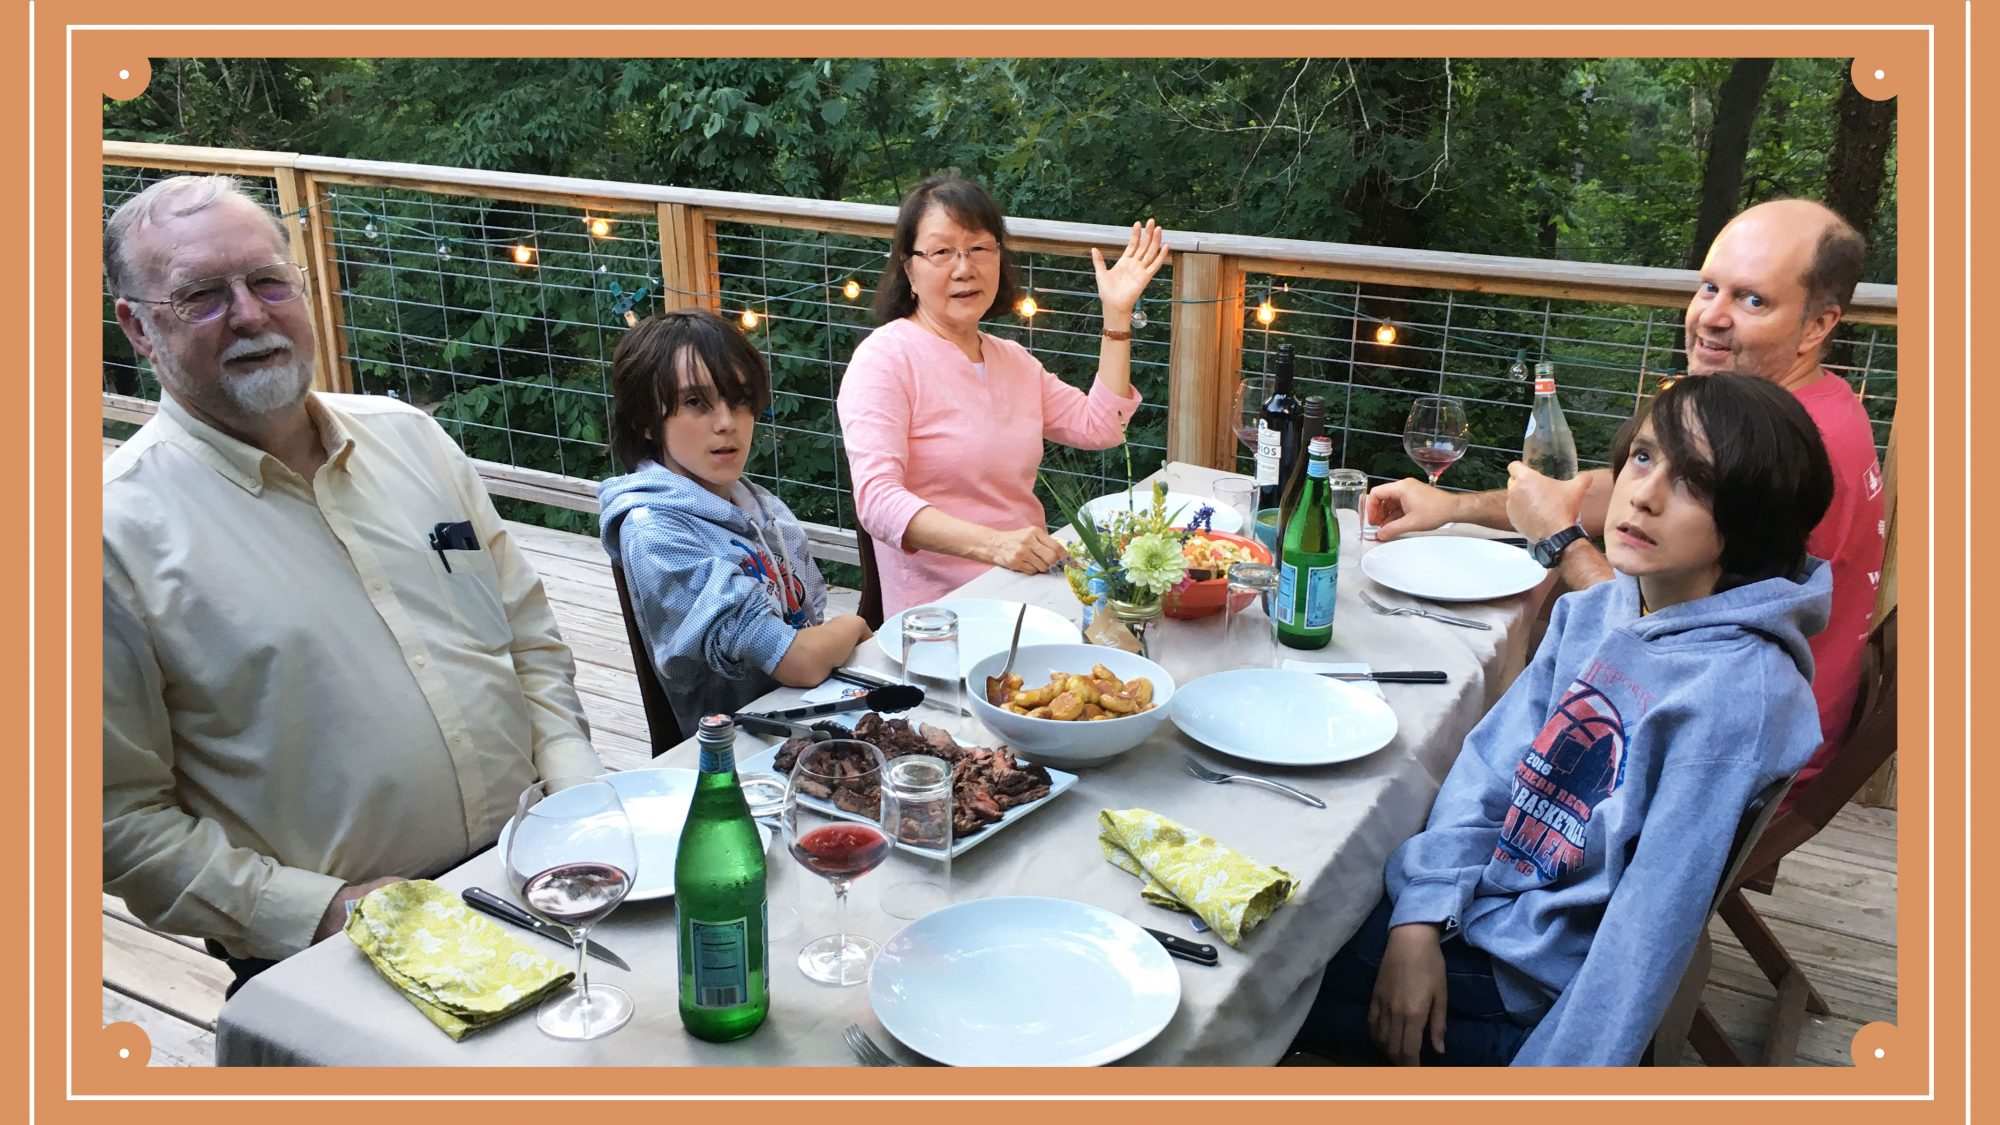 Ann Pittman and her family enjoying dinner outside